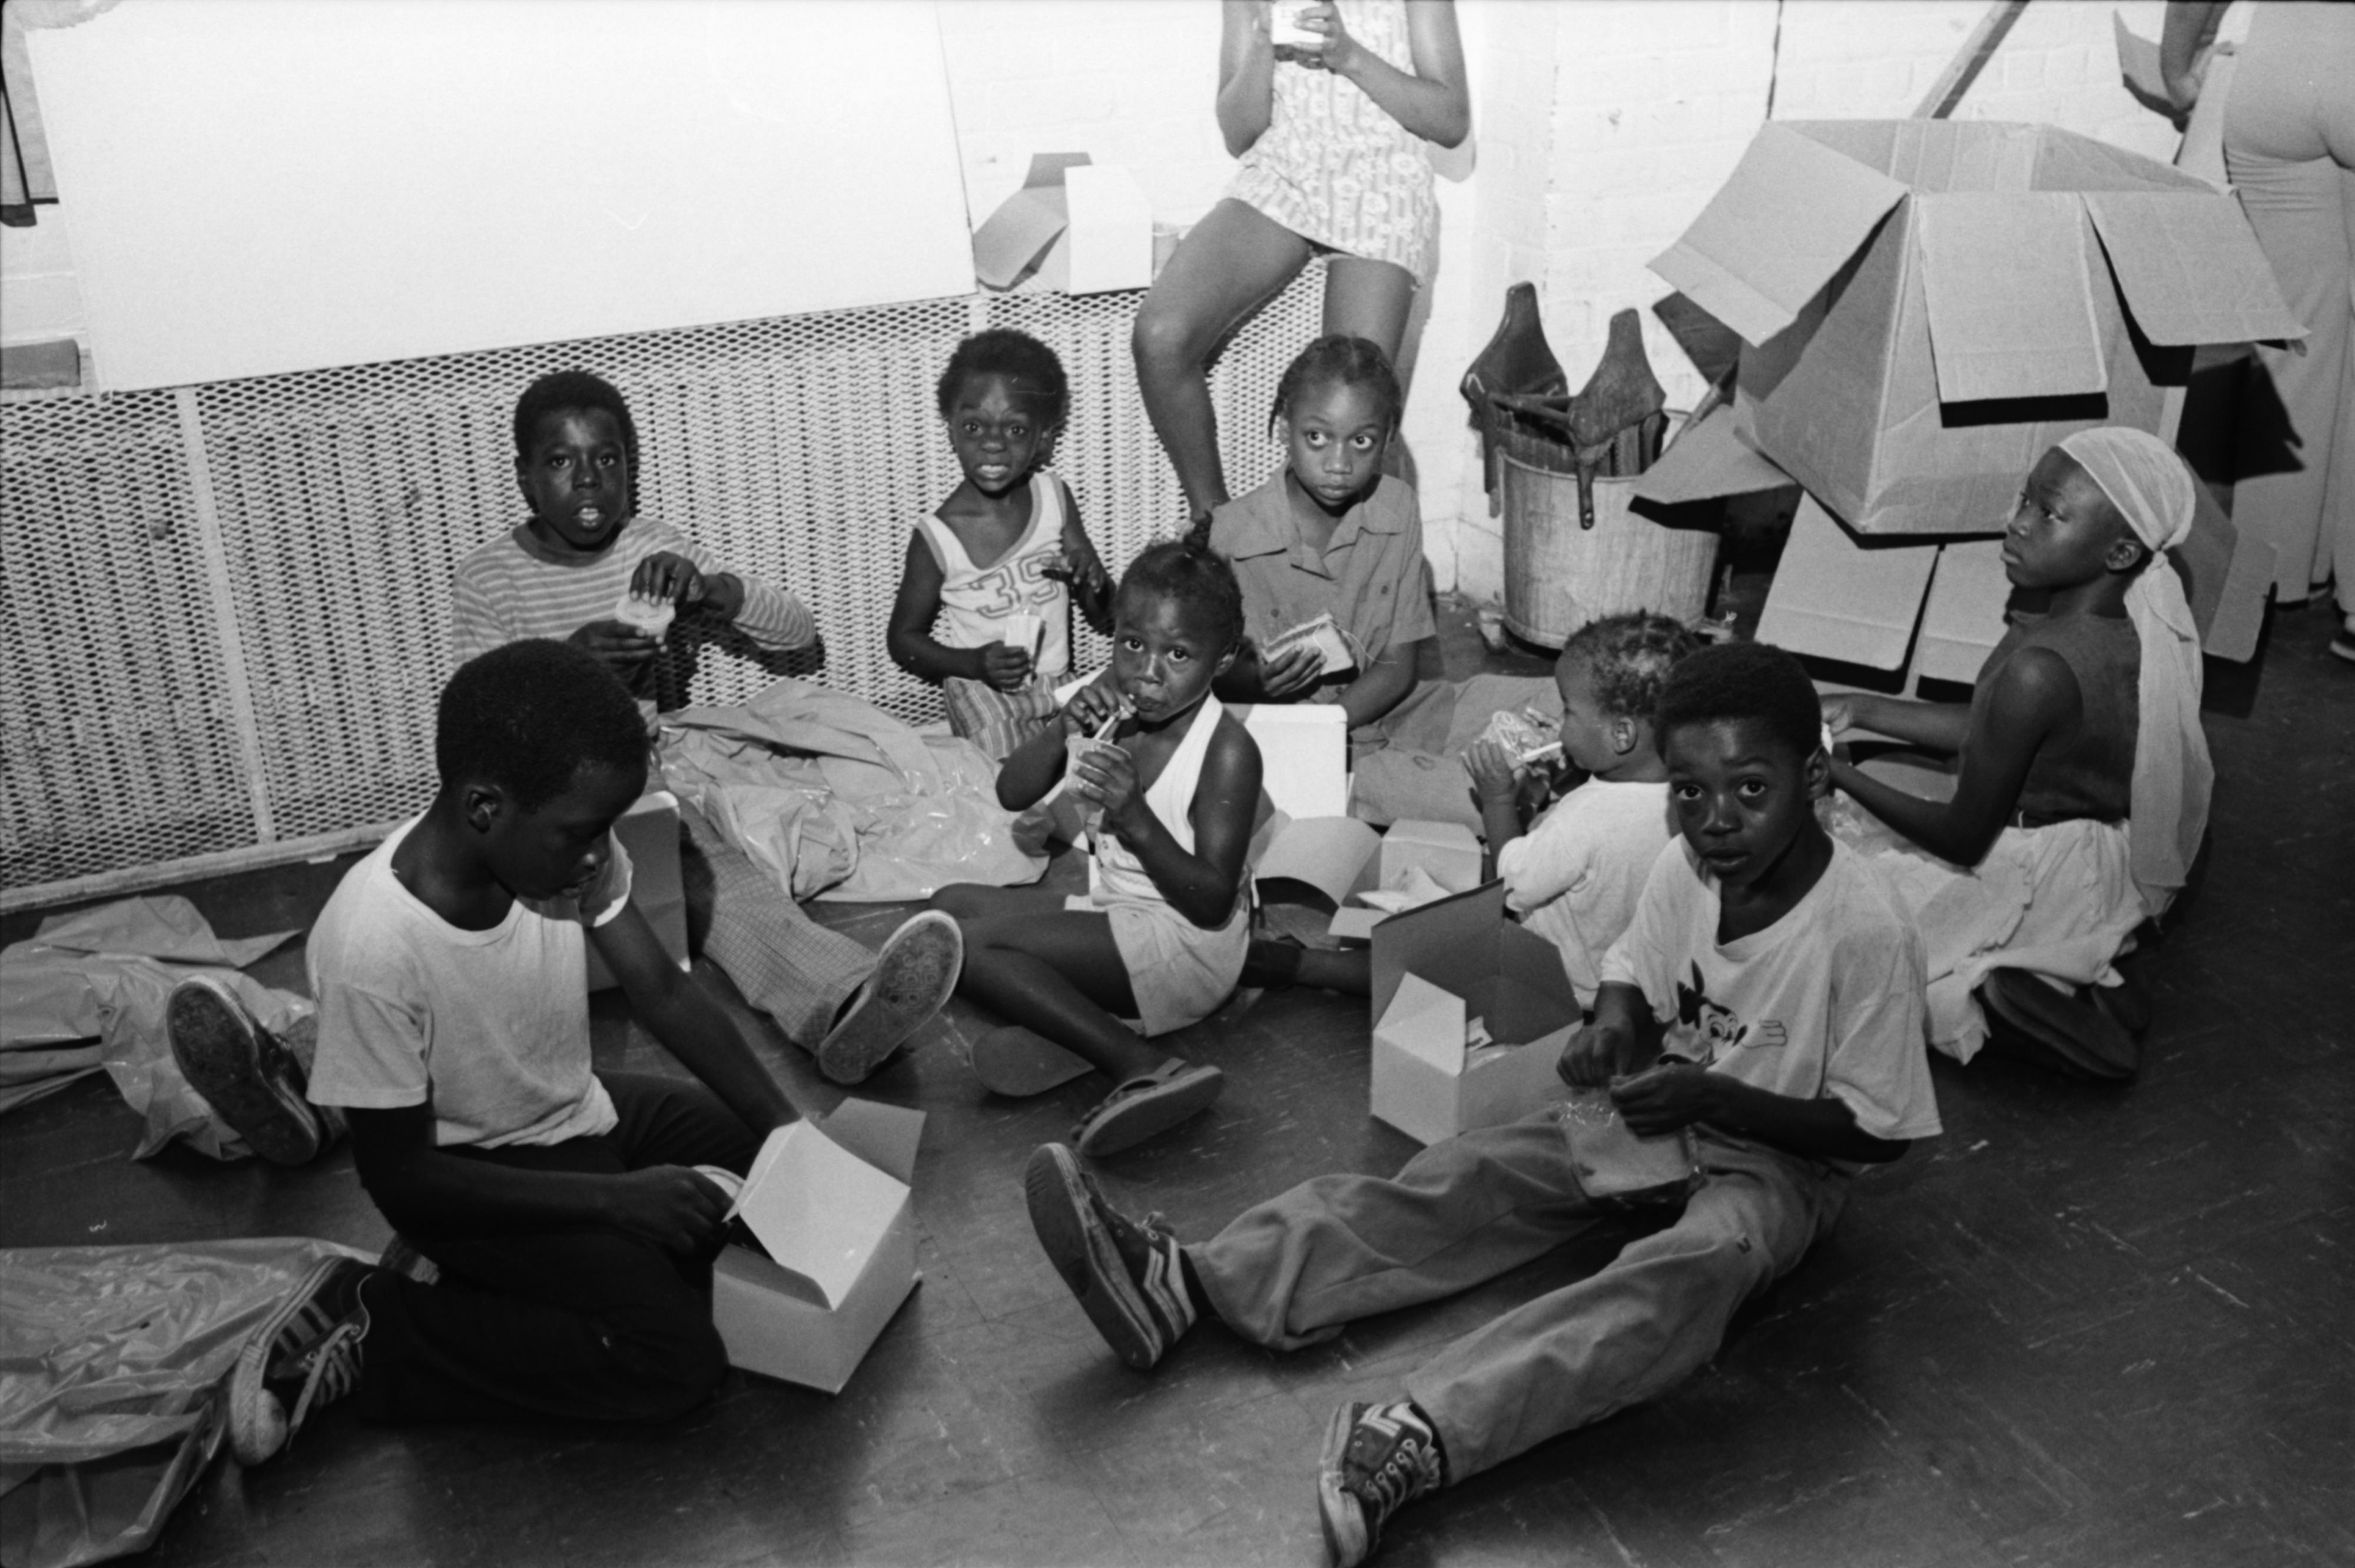 Ypsilanti Youths Eat Lunch on Floor at Run-Down Parkridge Community Center, July 1978 image